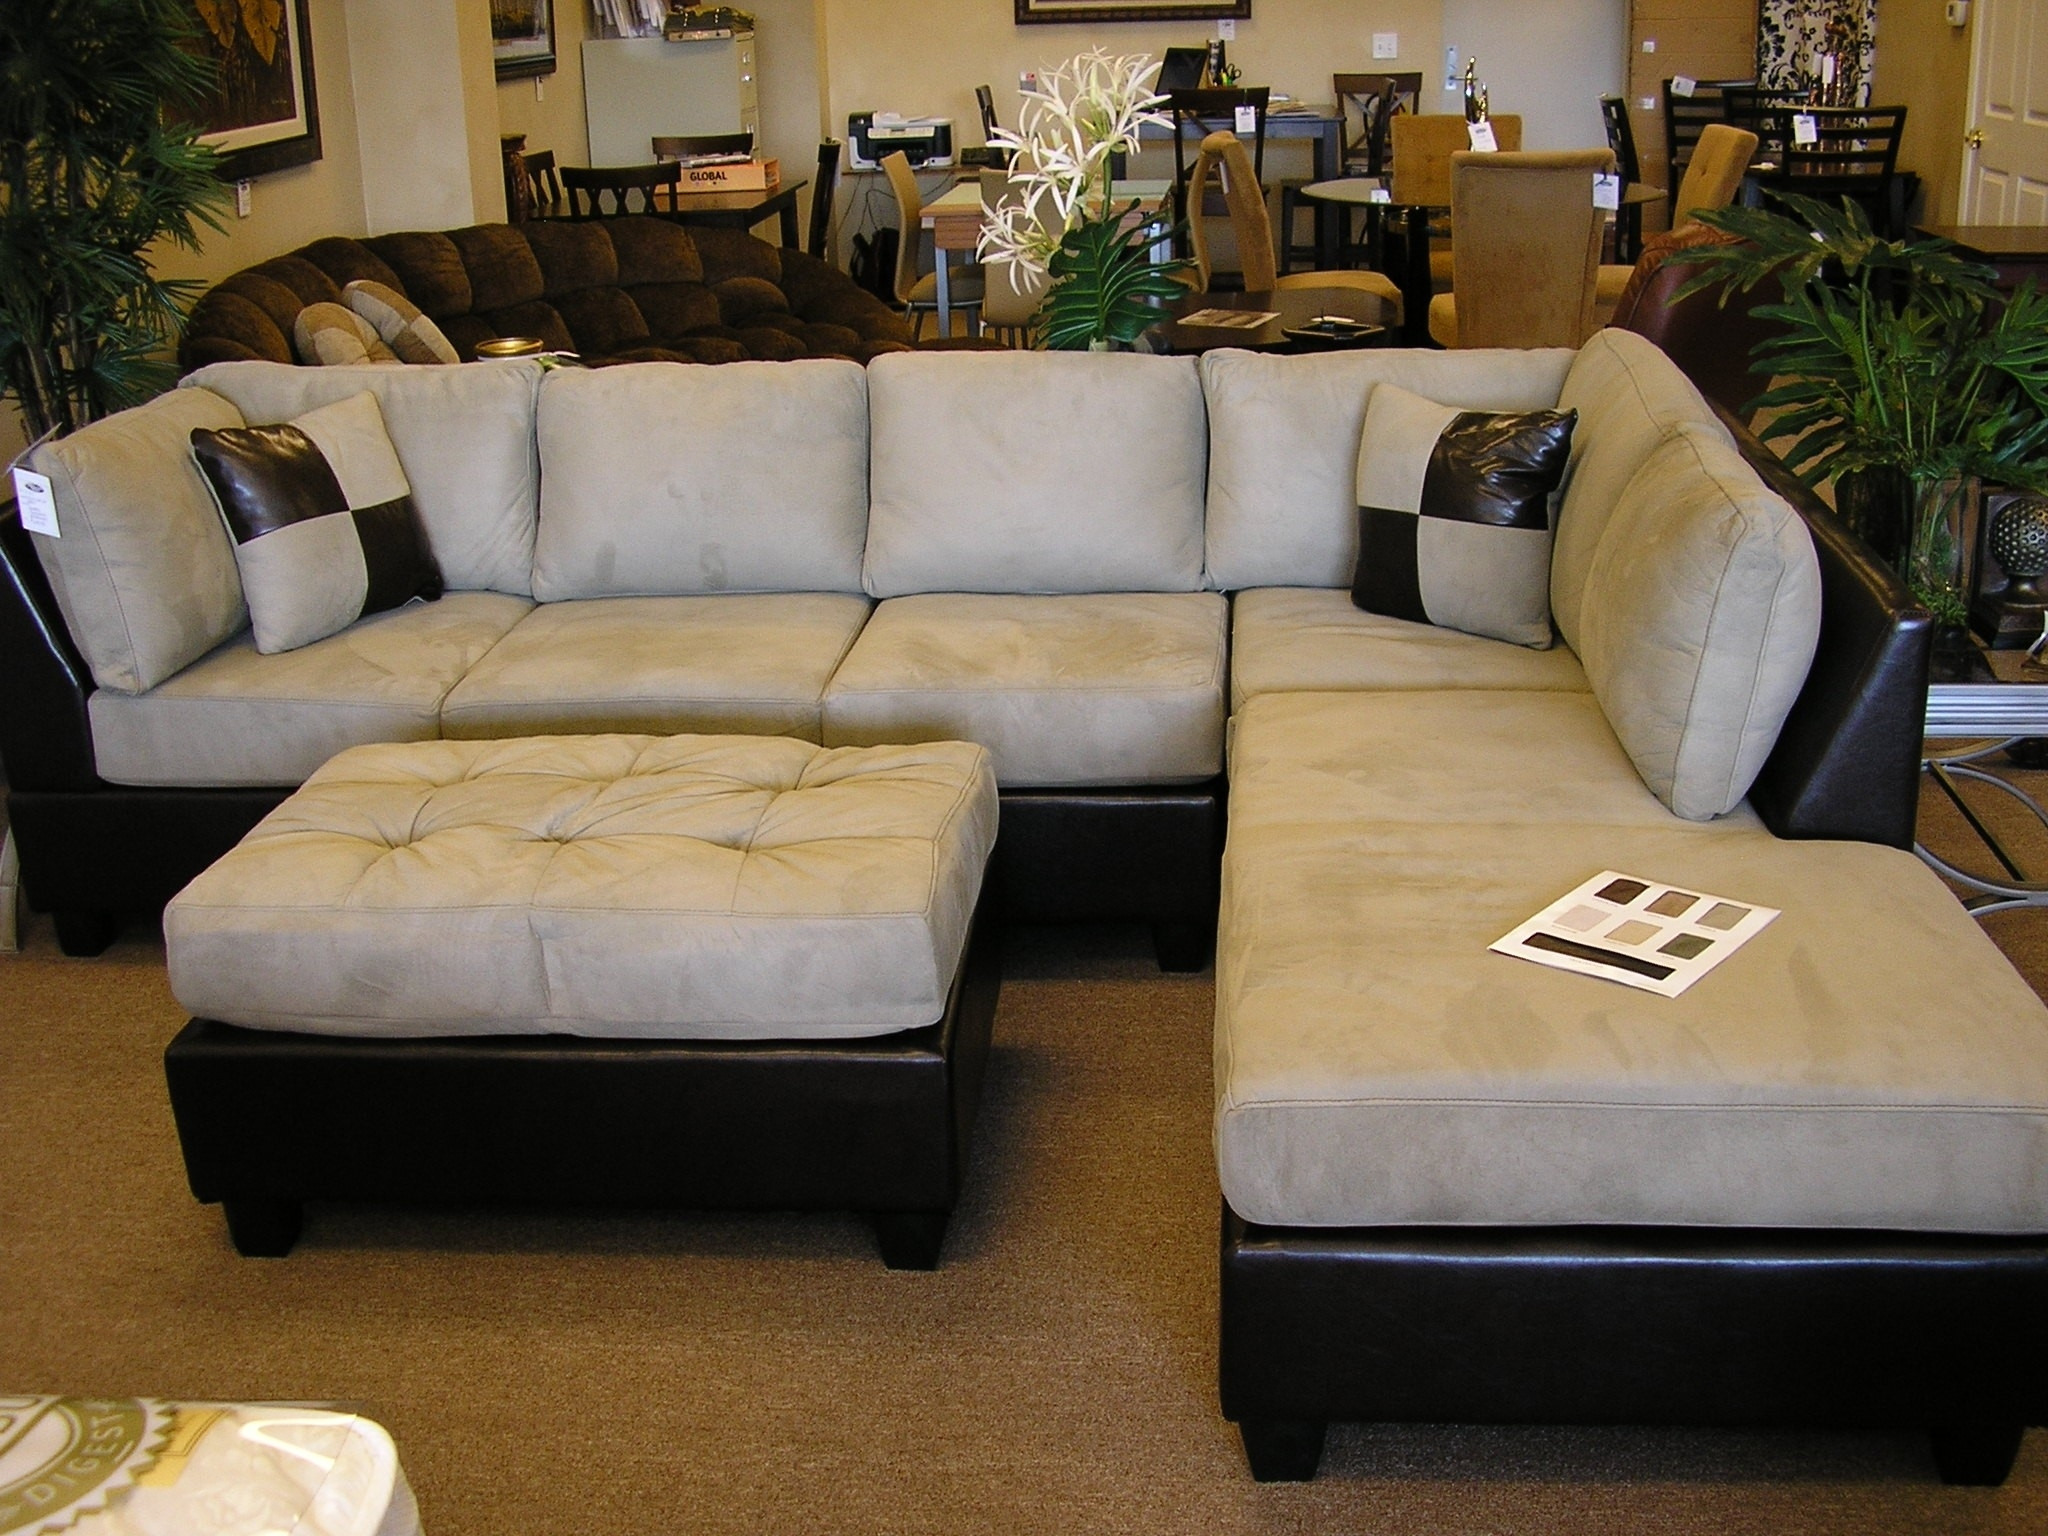 Beautiful Used Sectional Sofa With Lounger – Mediasupload Intended For Used Sectional Sofas (View 3 of 10)